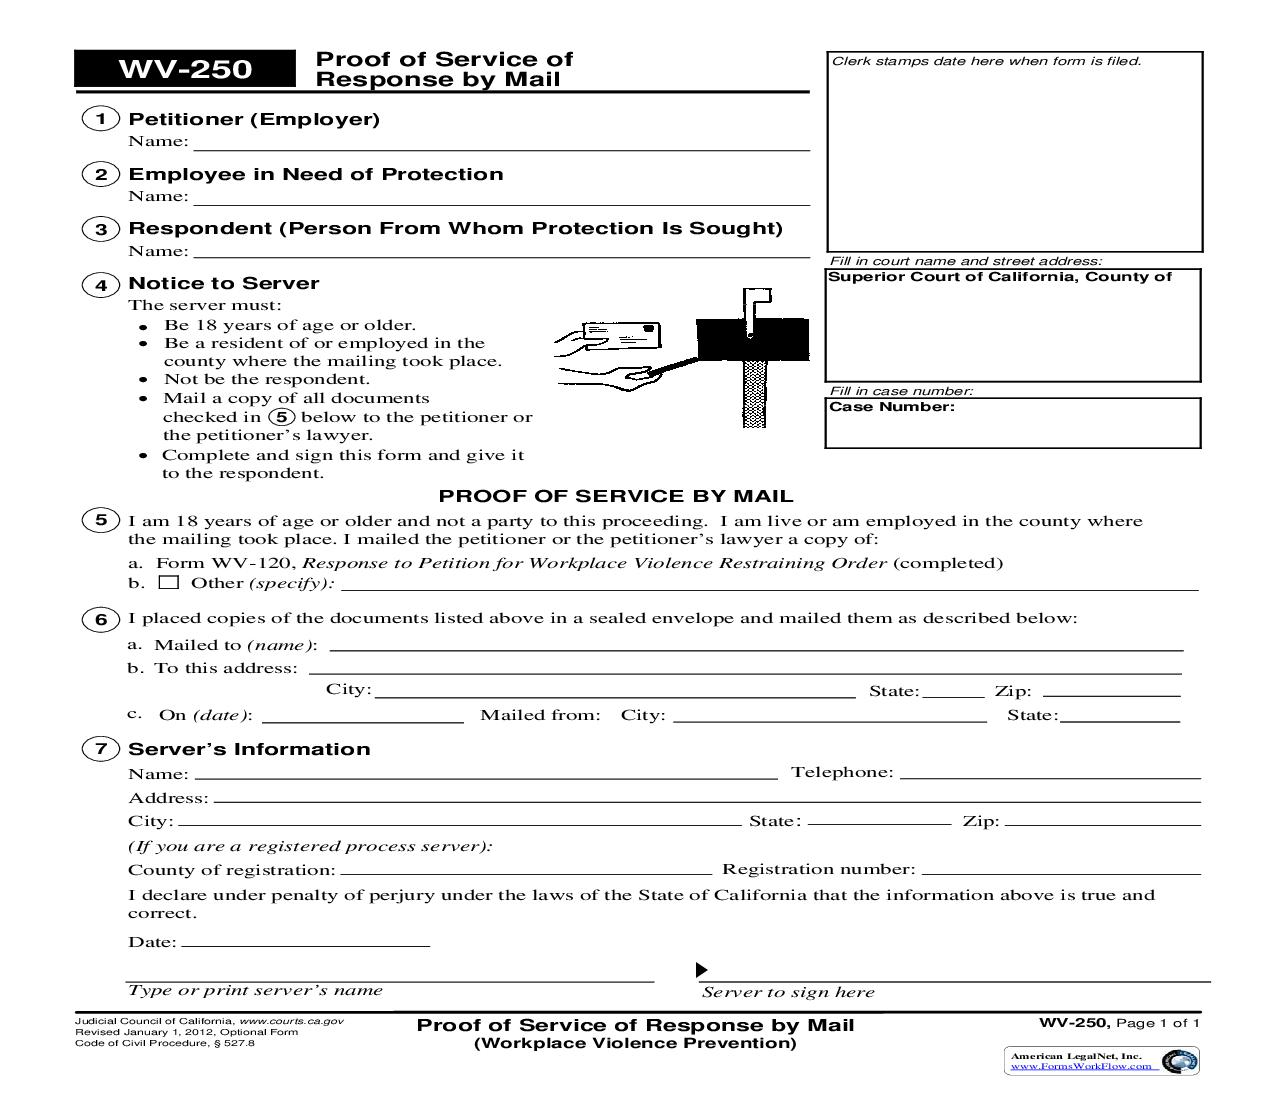 Proof Of Service Of Response By Mail (Workplace Violence Prevention) {WV-250} | Pdf Fpdf Doc Docx | California